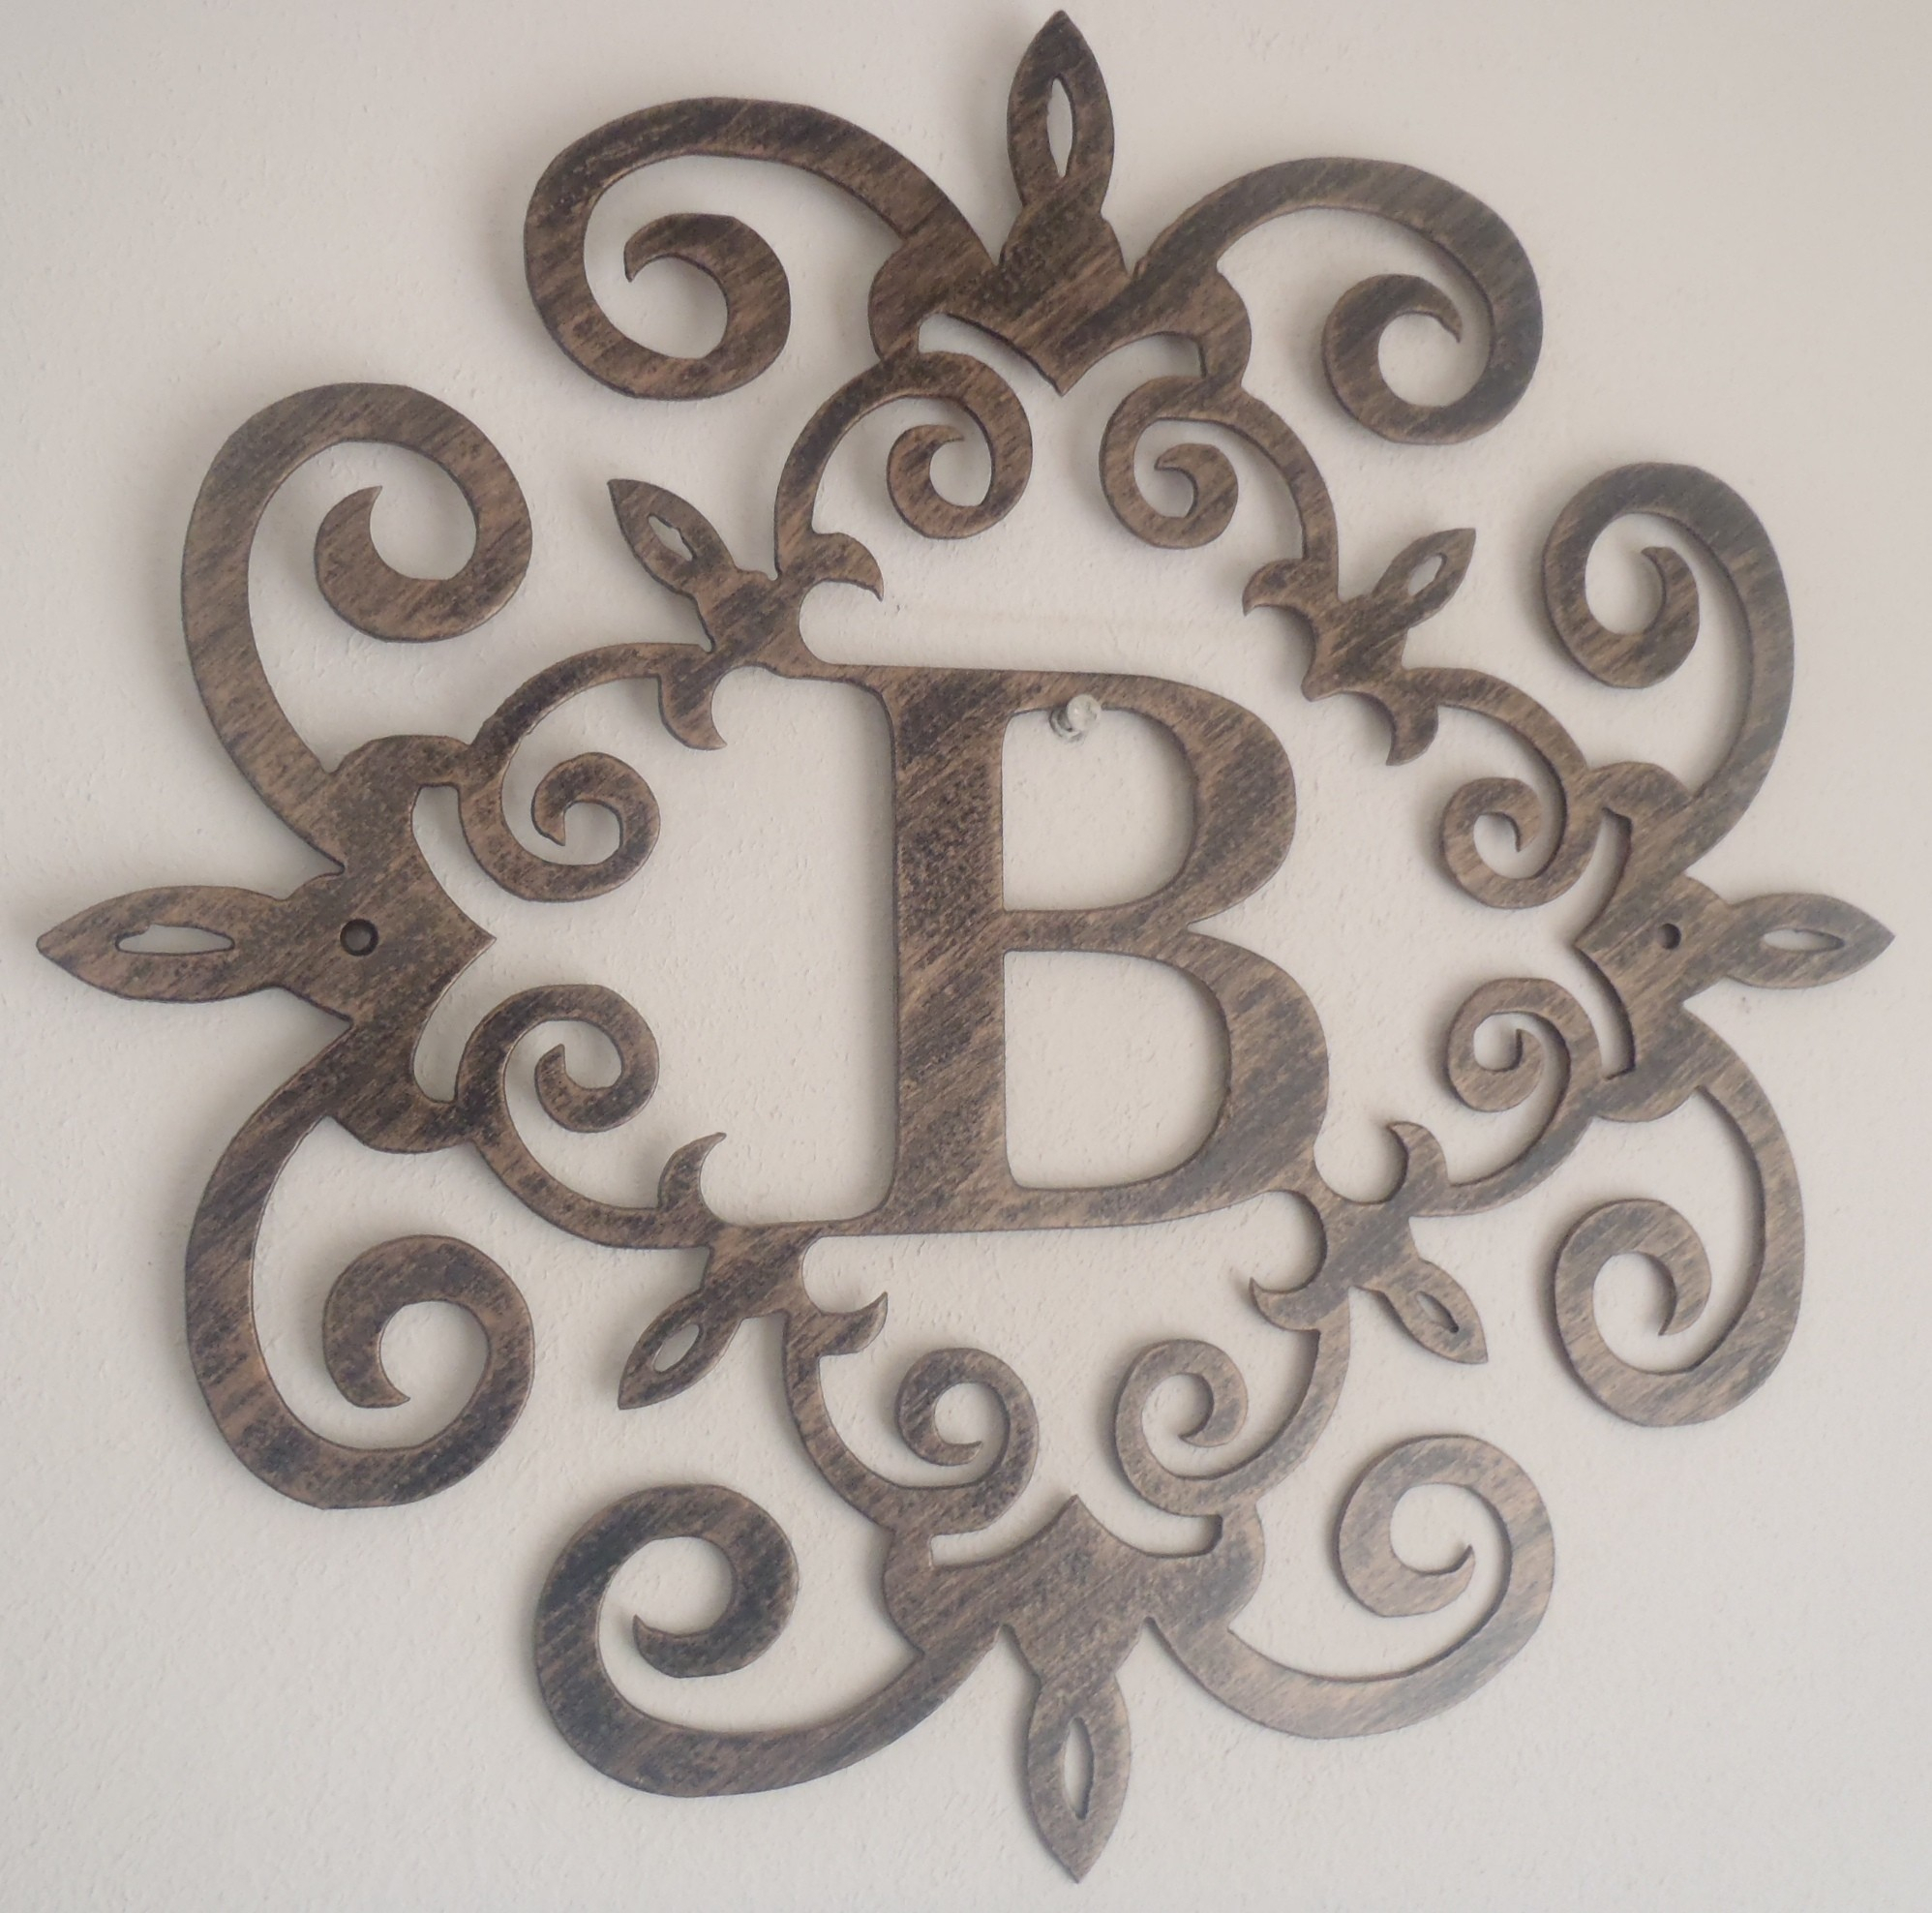 Decorating Large Metal Letters For Wall Decor (View 2 of 20)